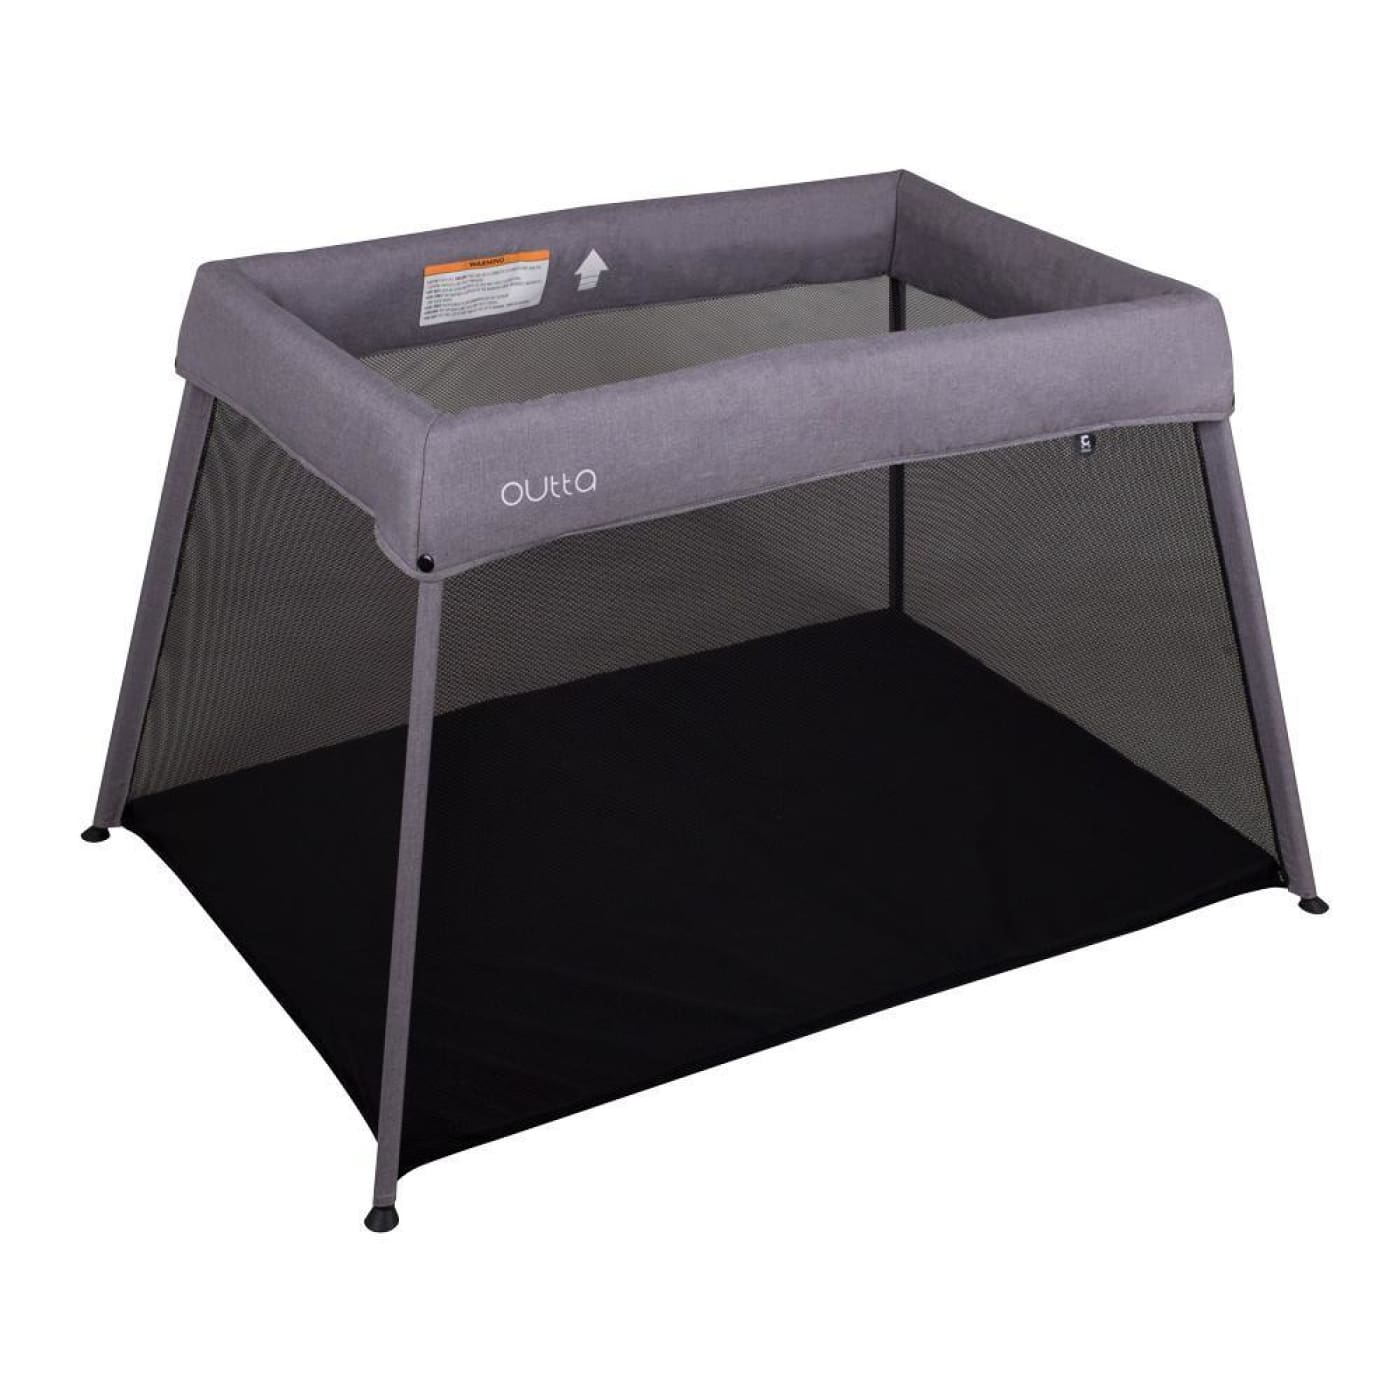 Childcare Outta Travel Cot - Moon Mist - Moon Mist - ON THE GO - PORTACOTS/ACCESSORIES